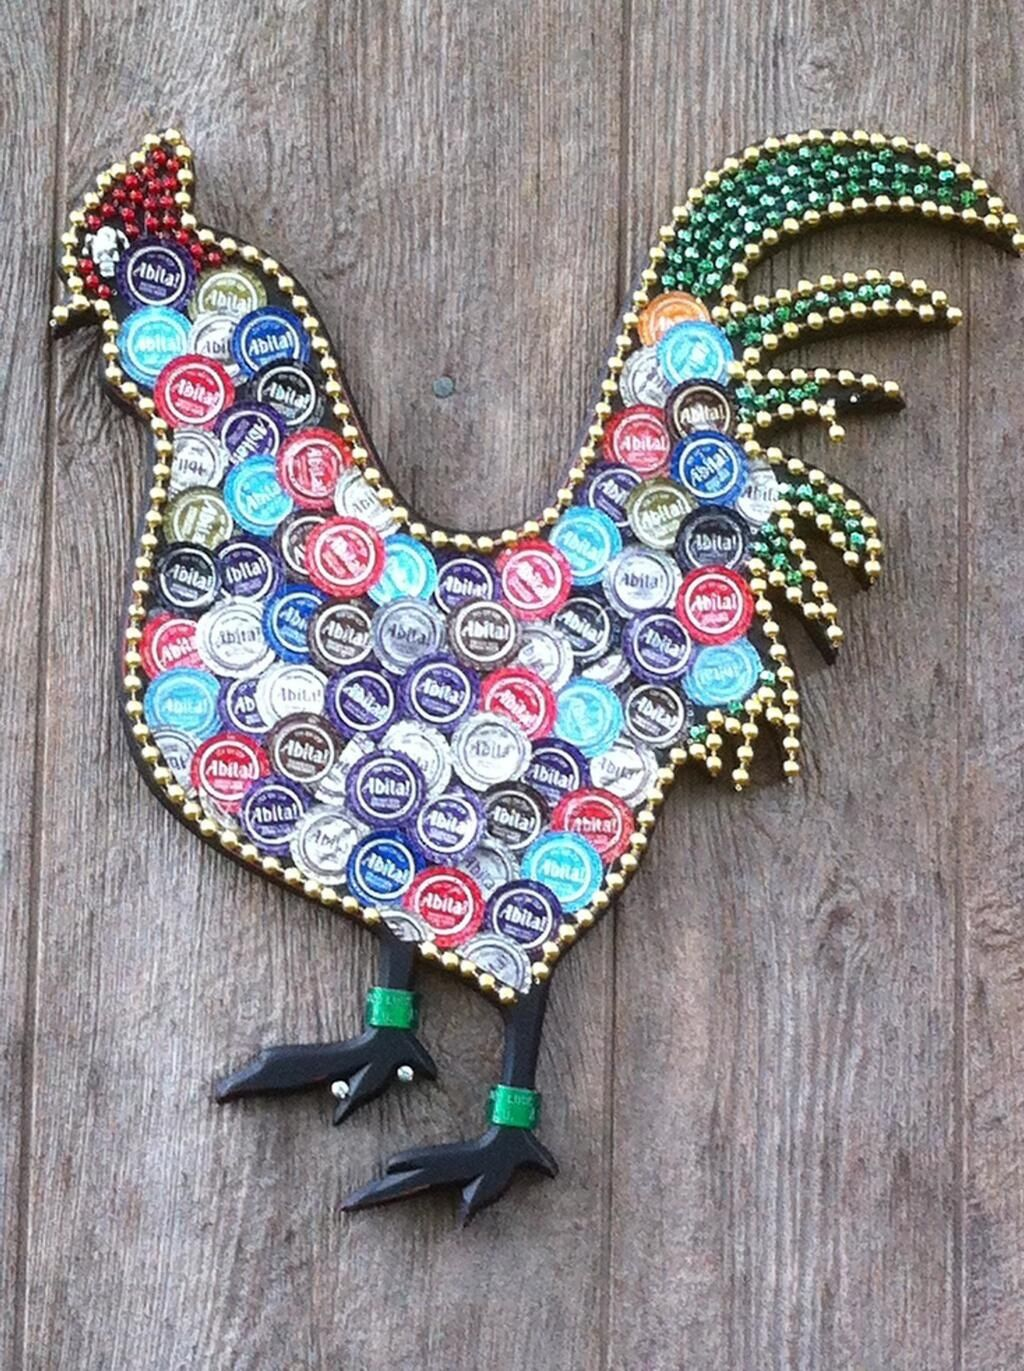 mardi gras craft ideas recycled caps and mardi gras create 4895